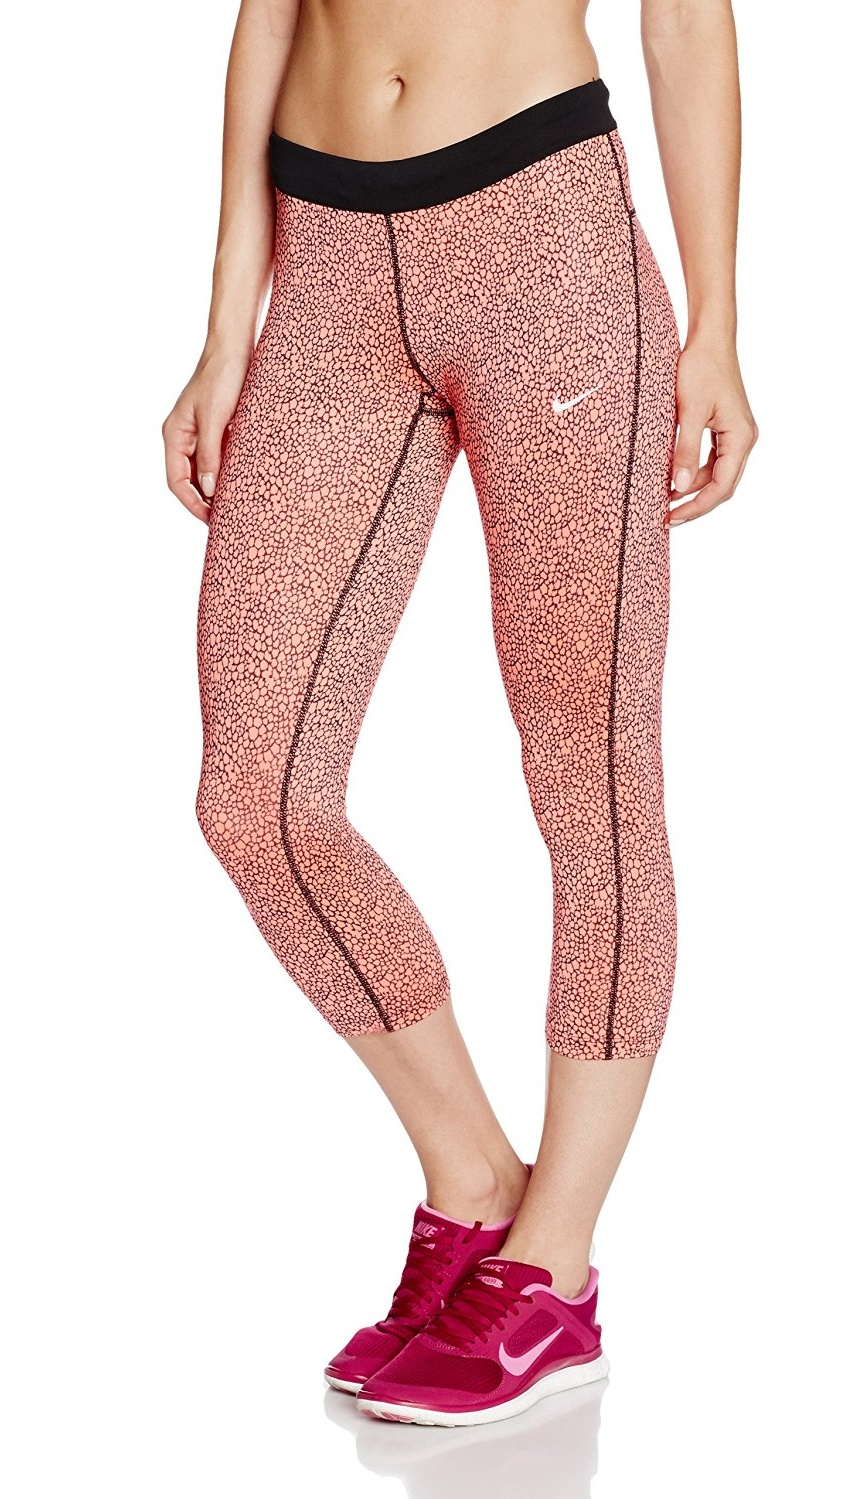 Nike Women's Dri-Fit AOP Relay Crop Running Tights-Coral by Nike